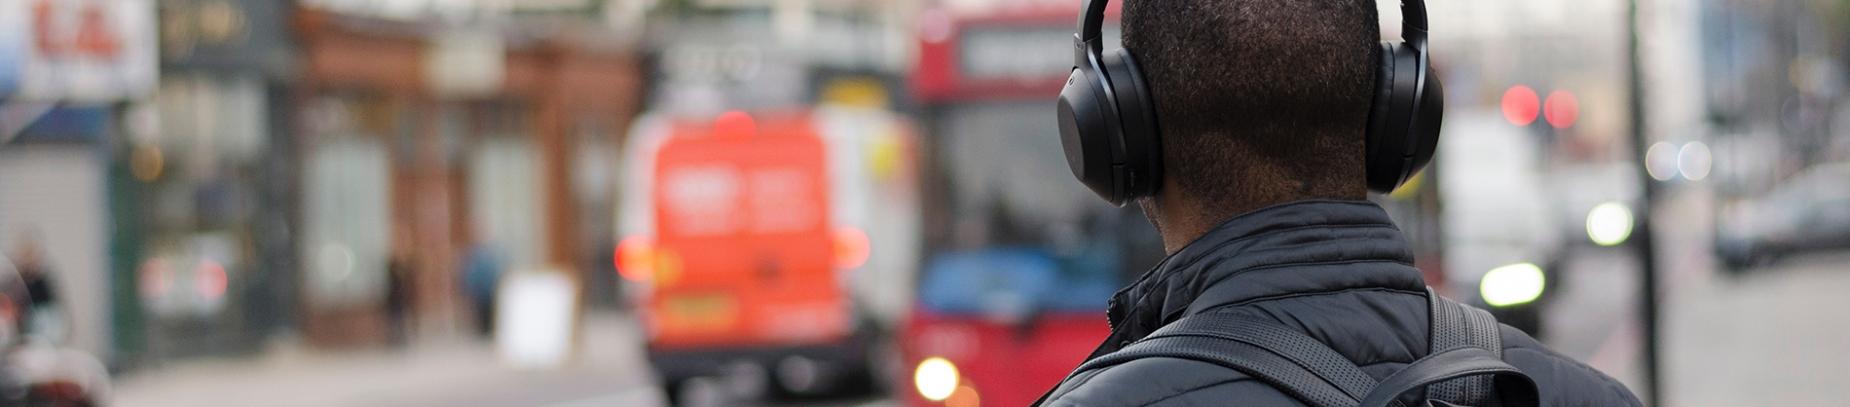 A man wearing headphones walking down a street